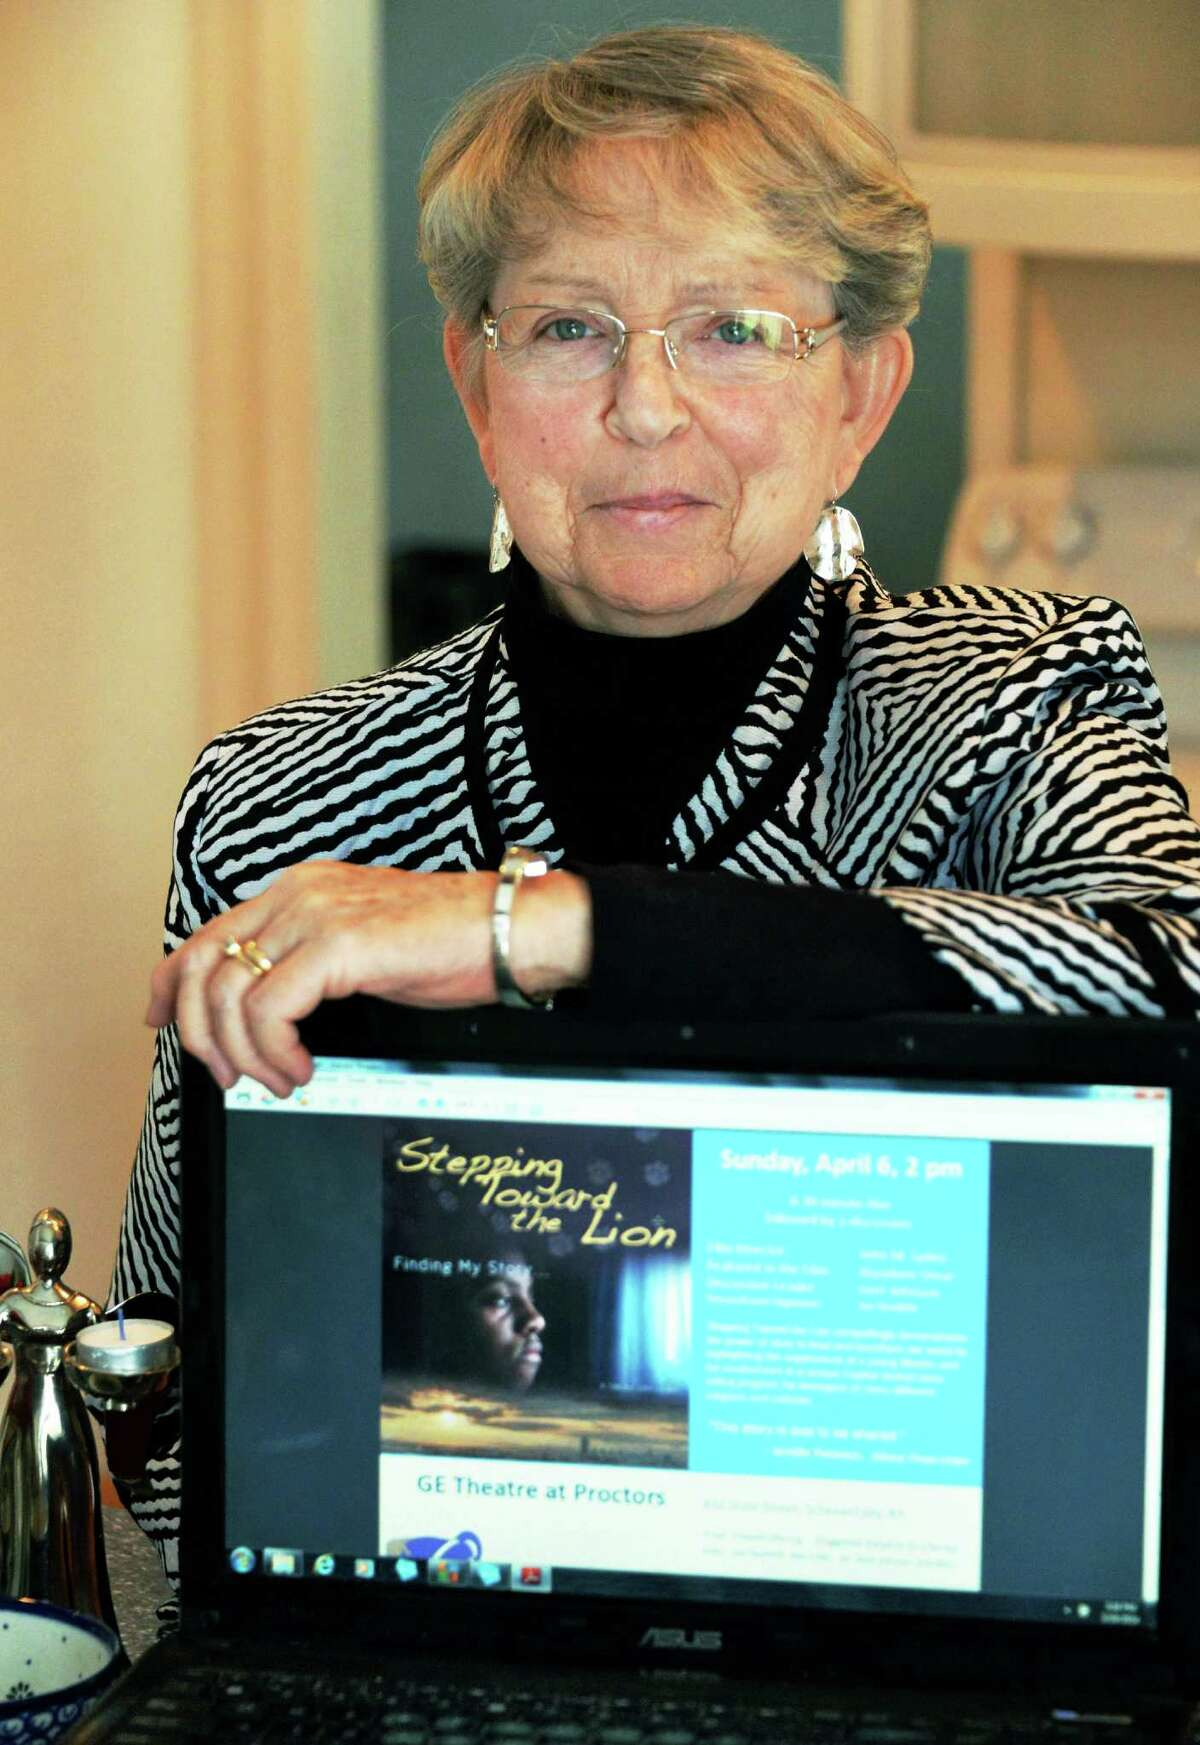 """Educator and storyteller Gert Johnson with website for the upcoming film """"Stepping Toward the Lion"""" by John Lyden, an alum of Children at the Well, in her home Wednesday March 19, 2014, in Niskayuna, NY. (John Carl D'Annibale / Times Union)"""